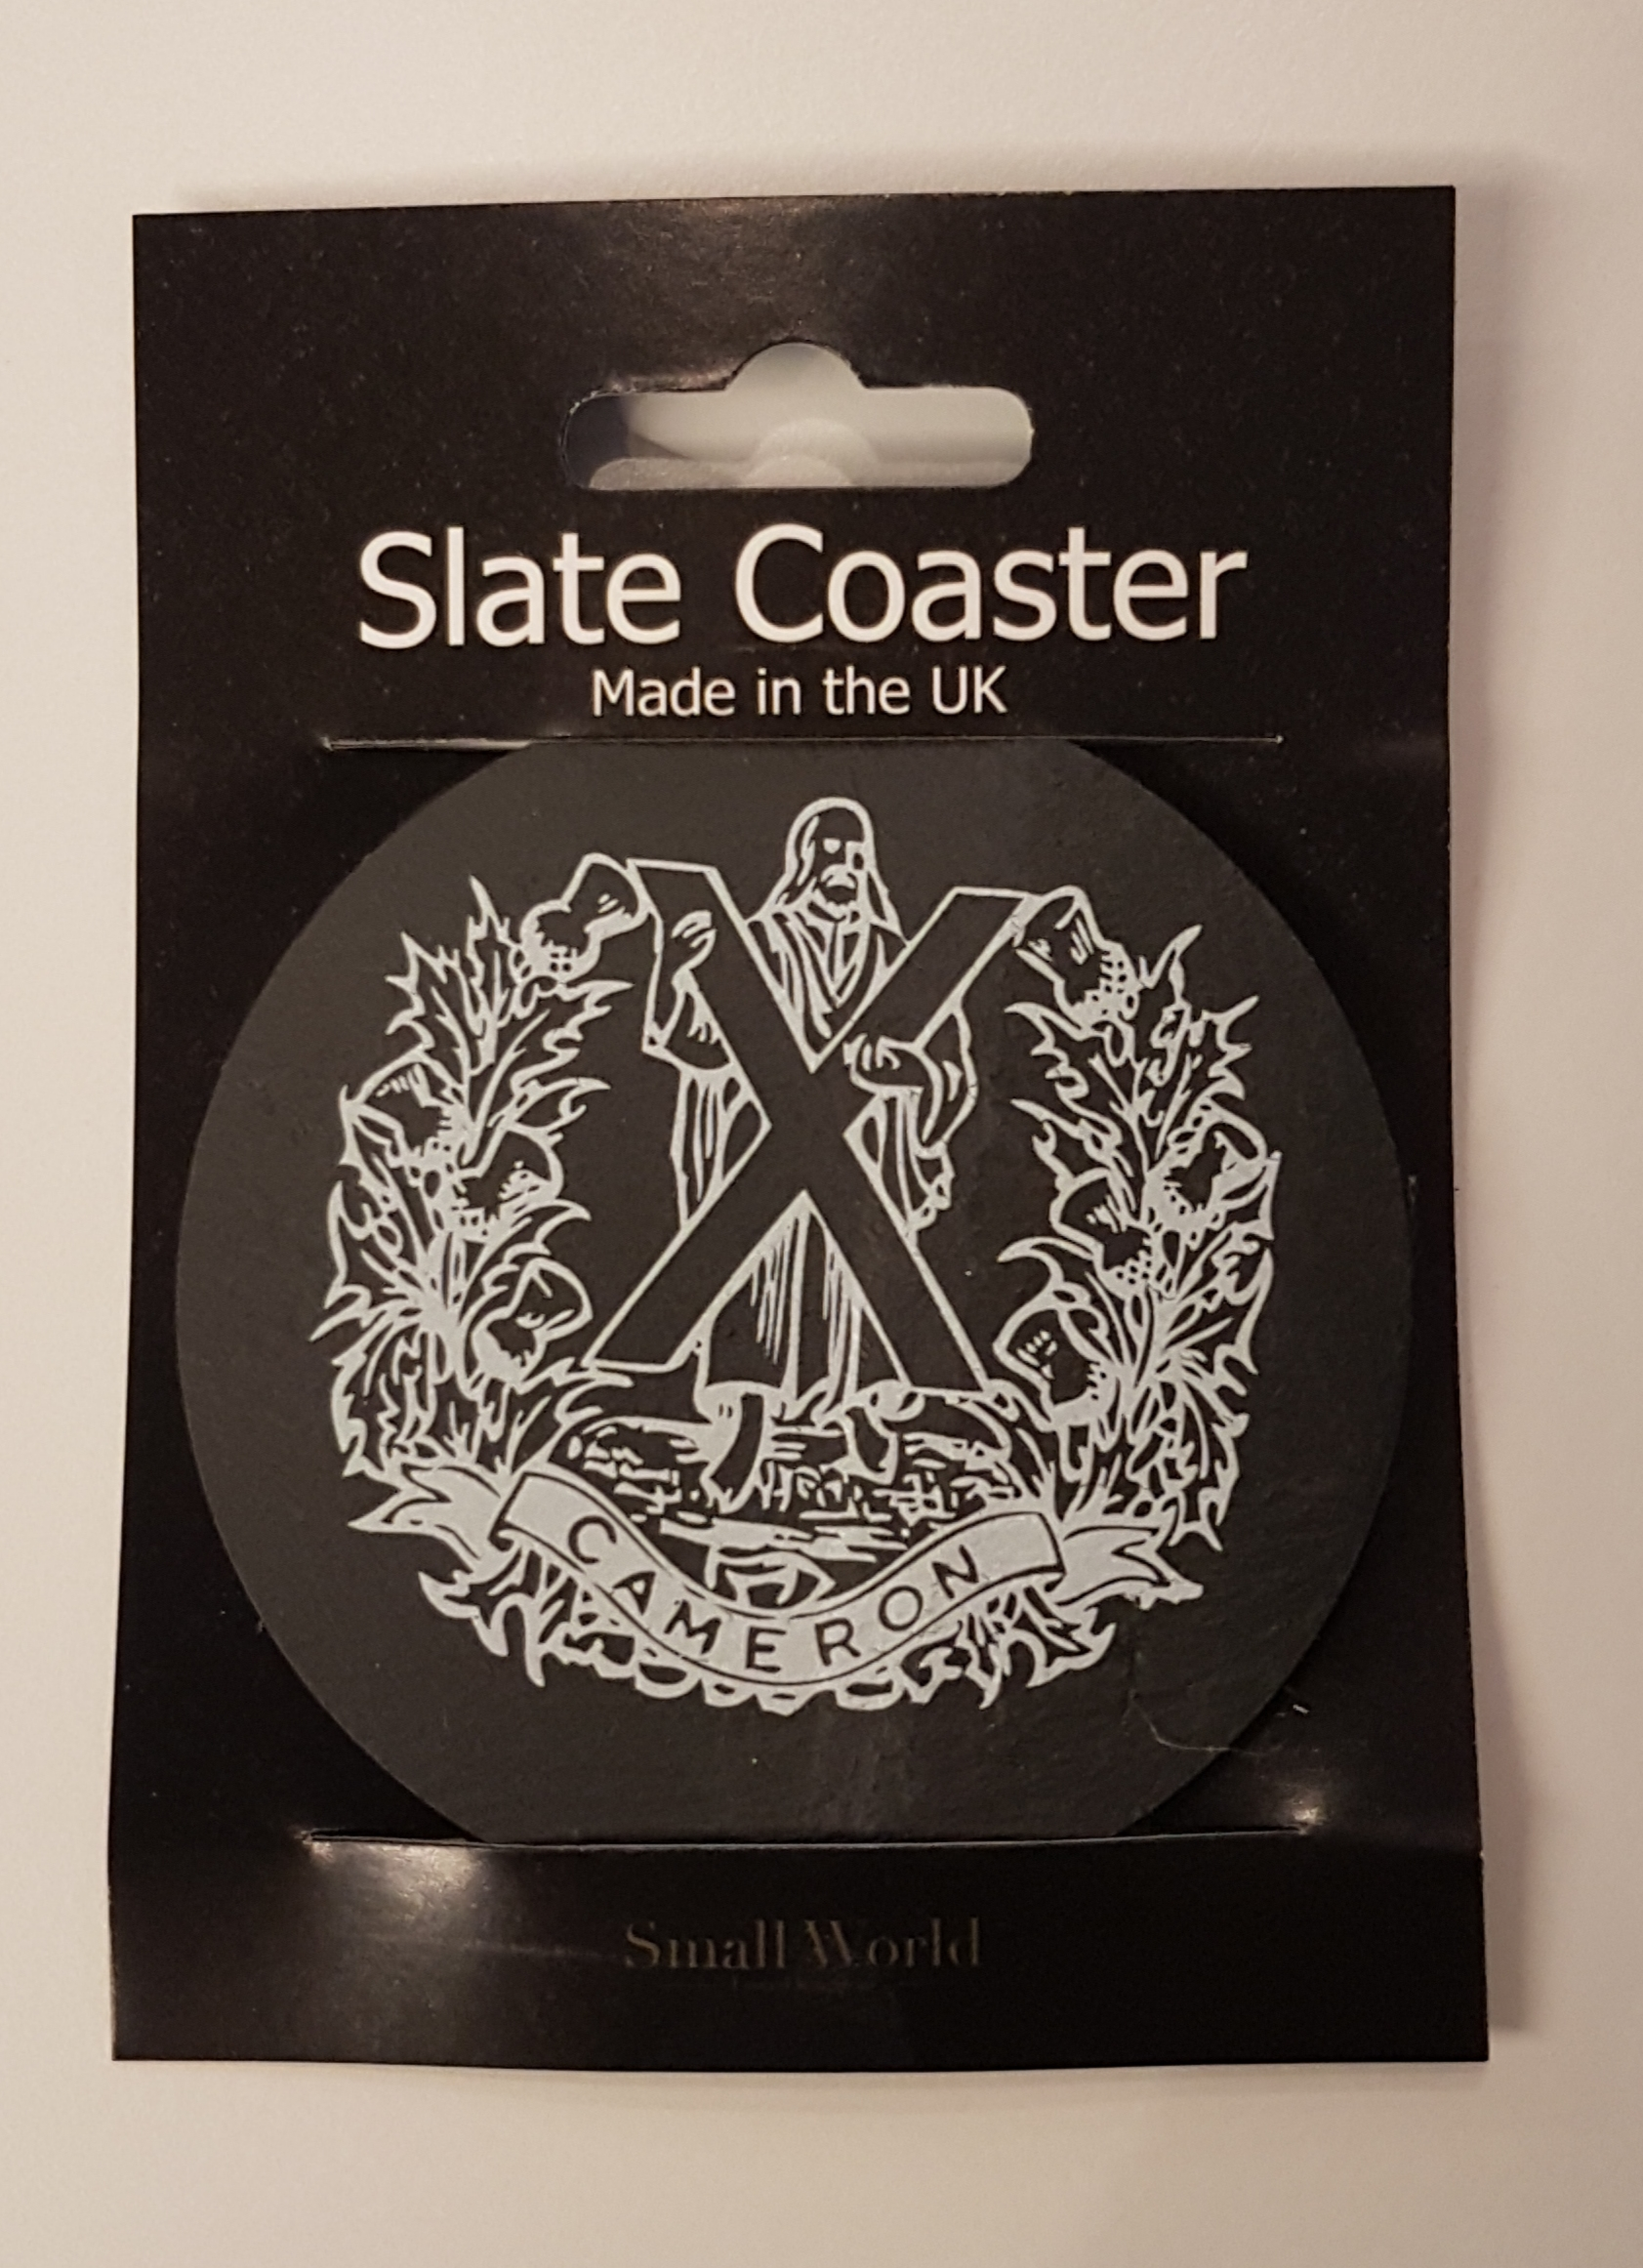 Slate Coaster - The Queen's Own Cameron Highlanders